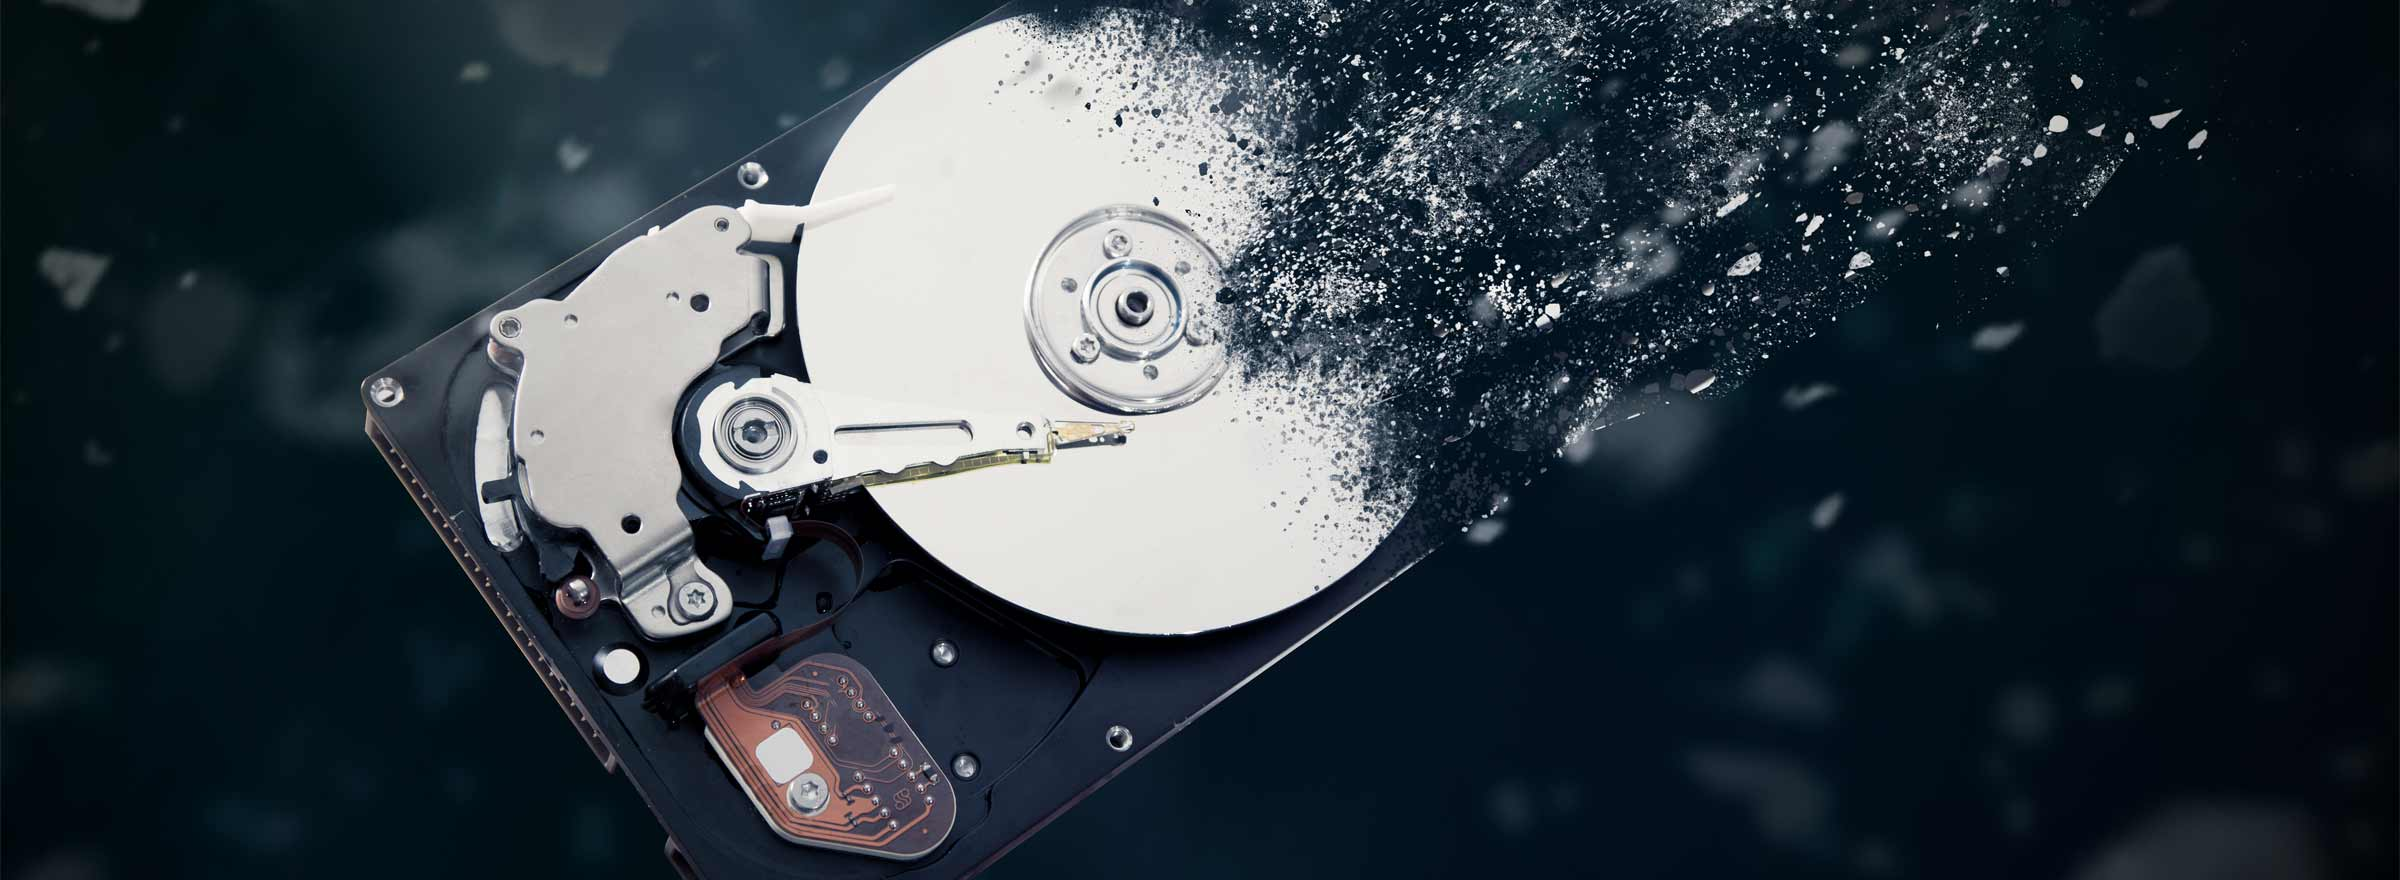 a hard drive appearing to disintegrate